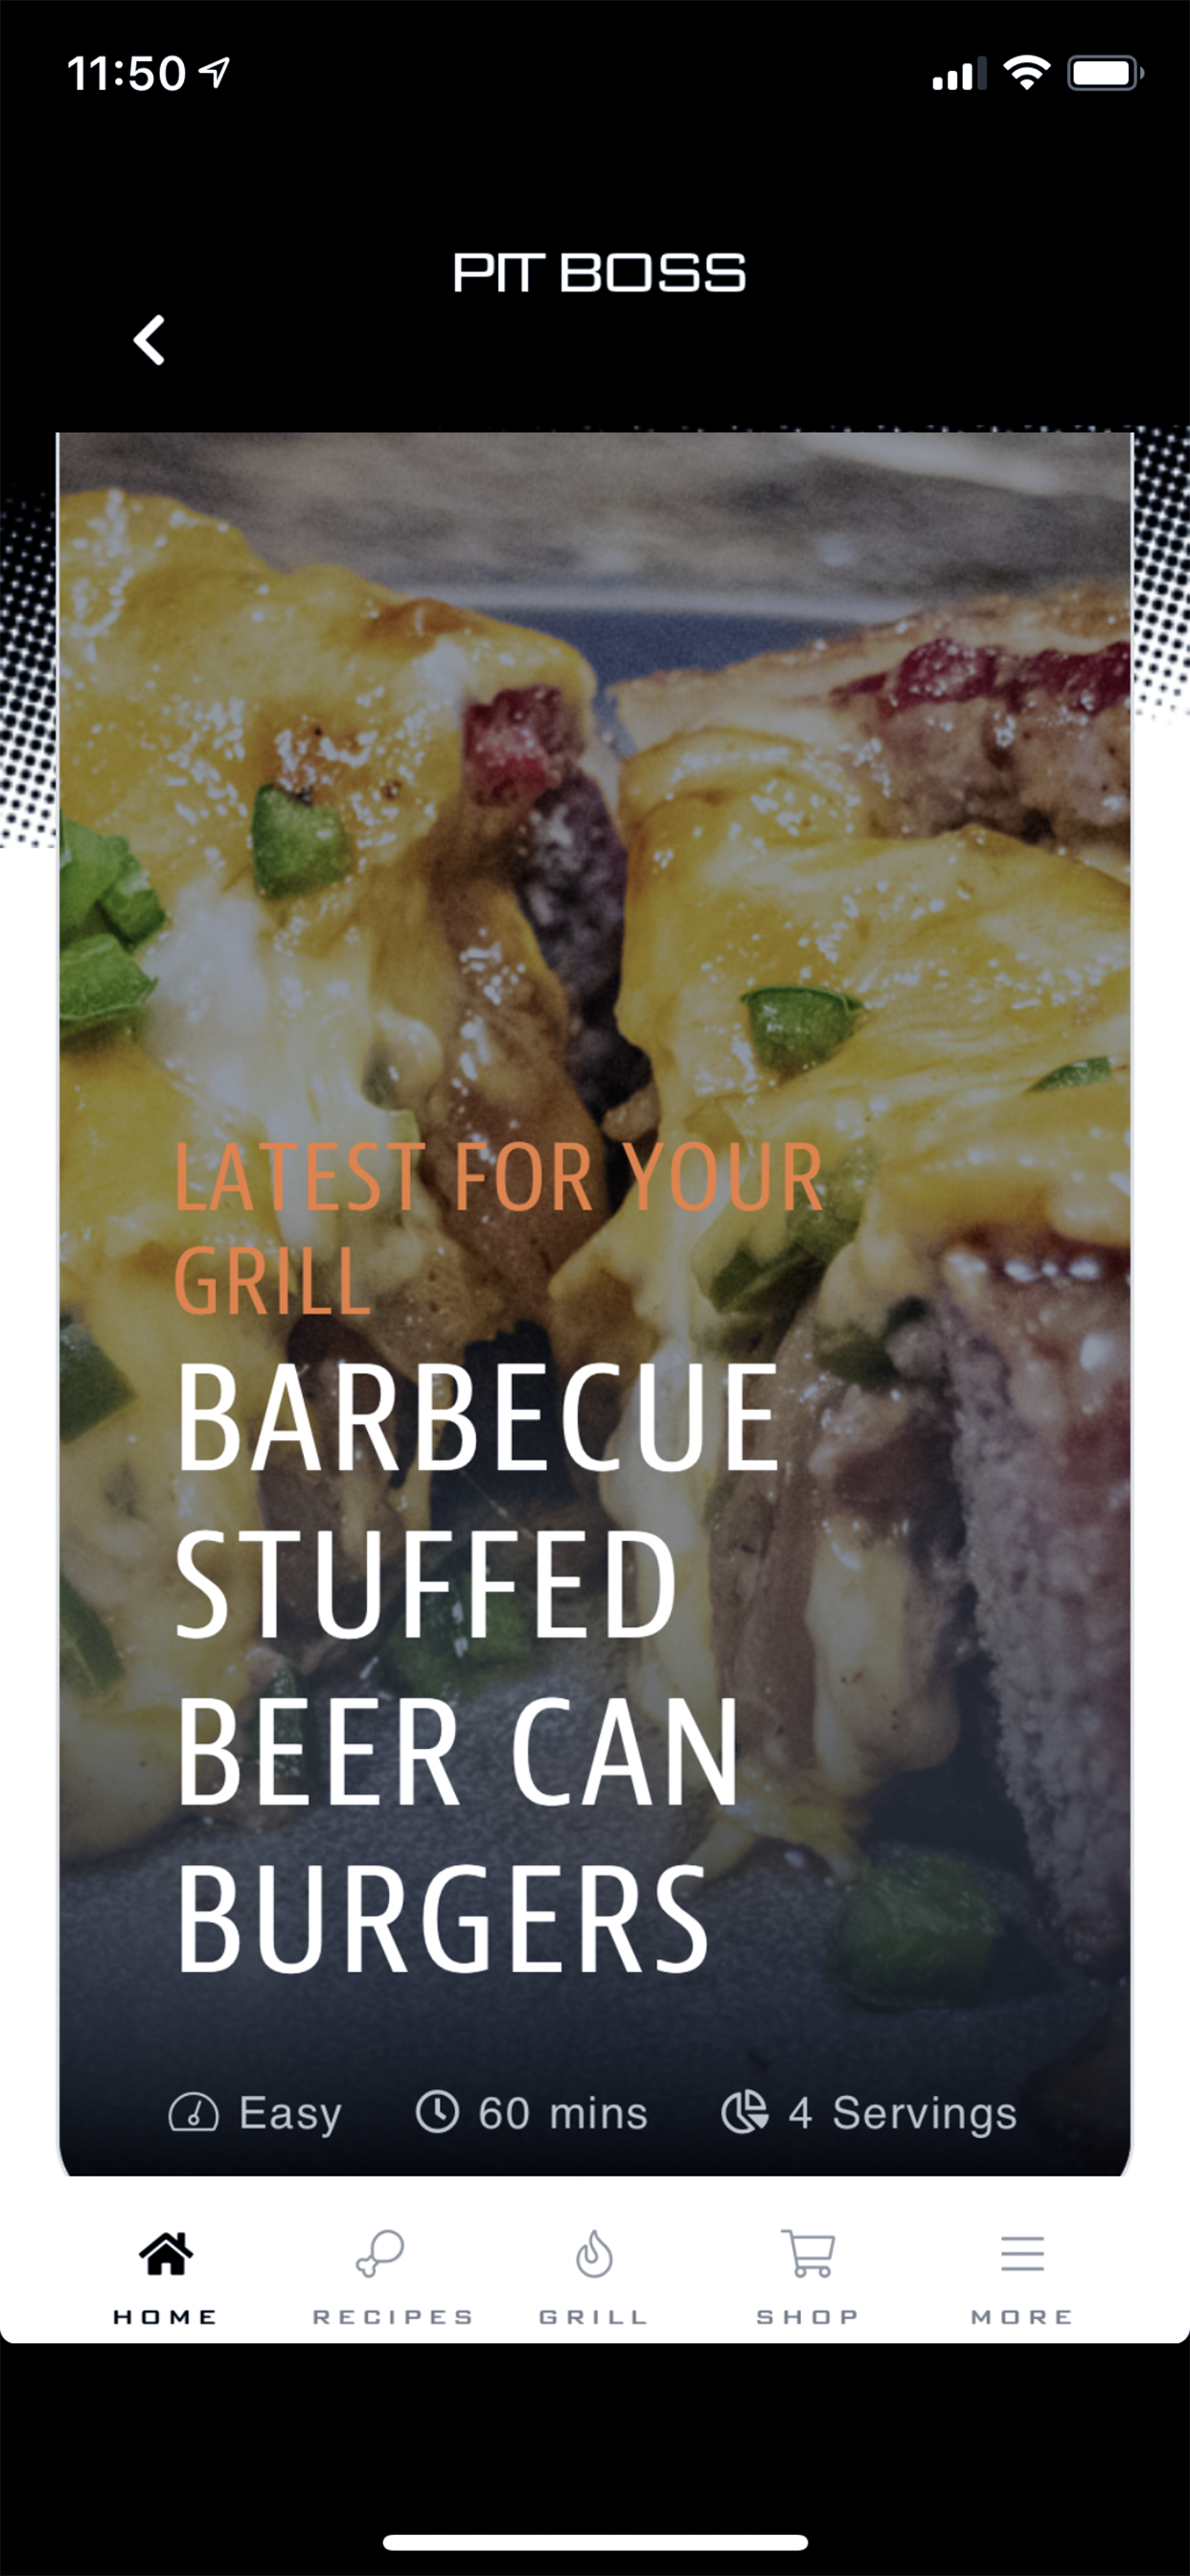 pit boss grill app home screen example